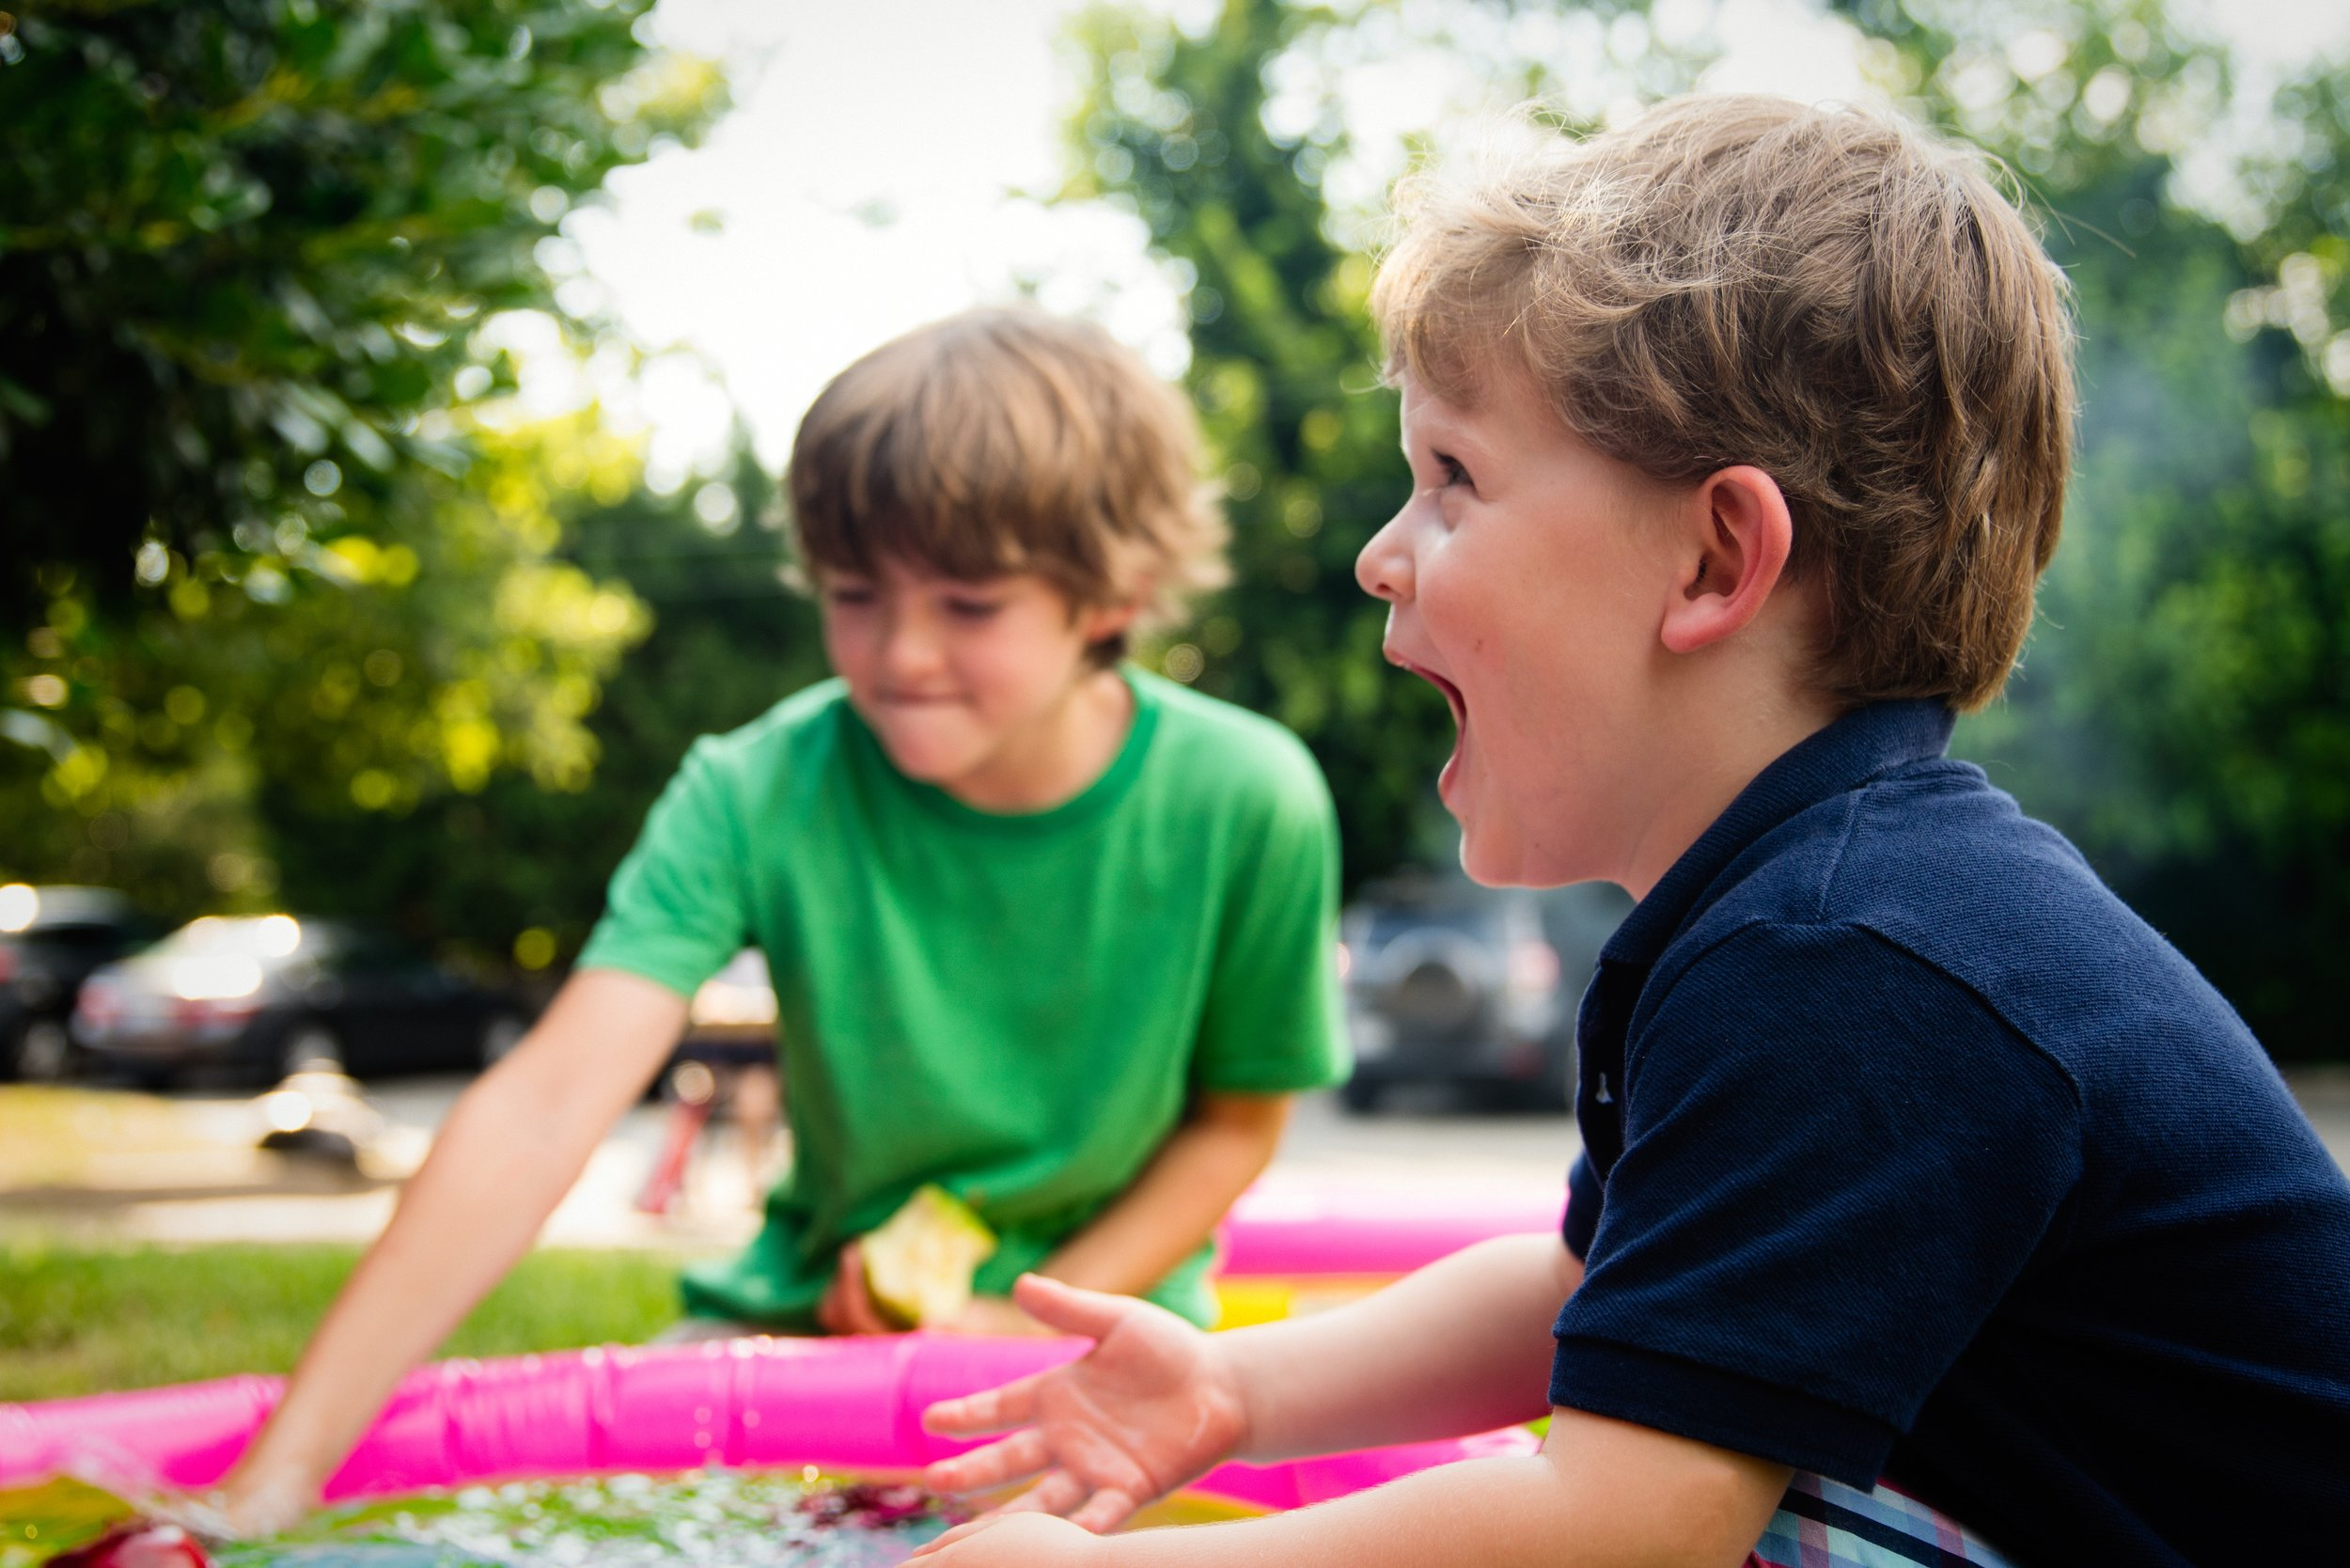 INQUIRE ABOUT registerING your child -